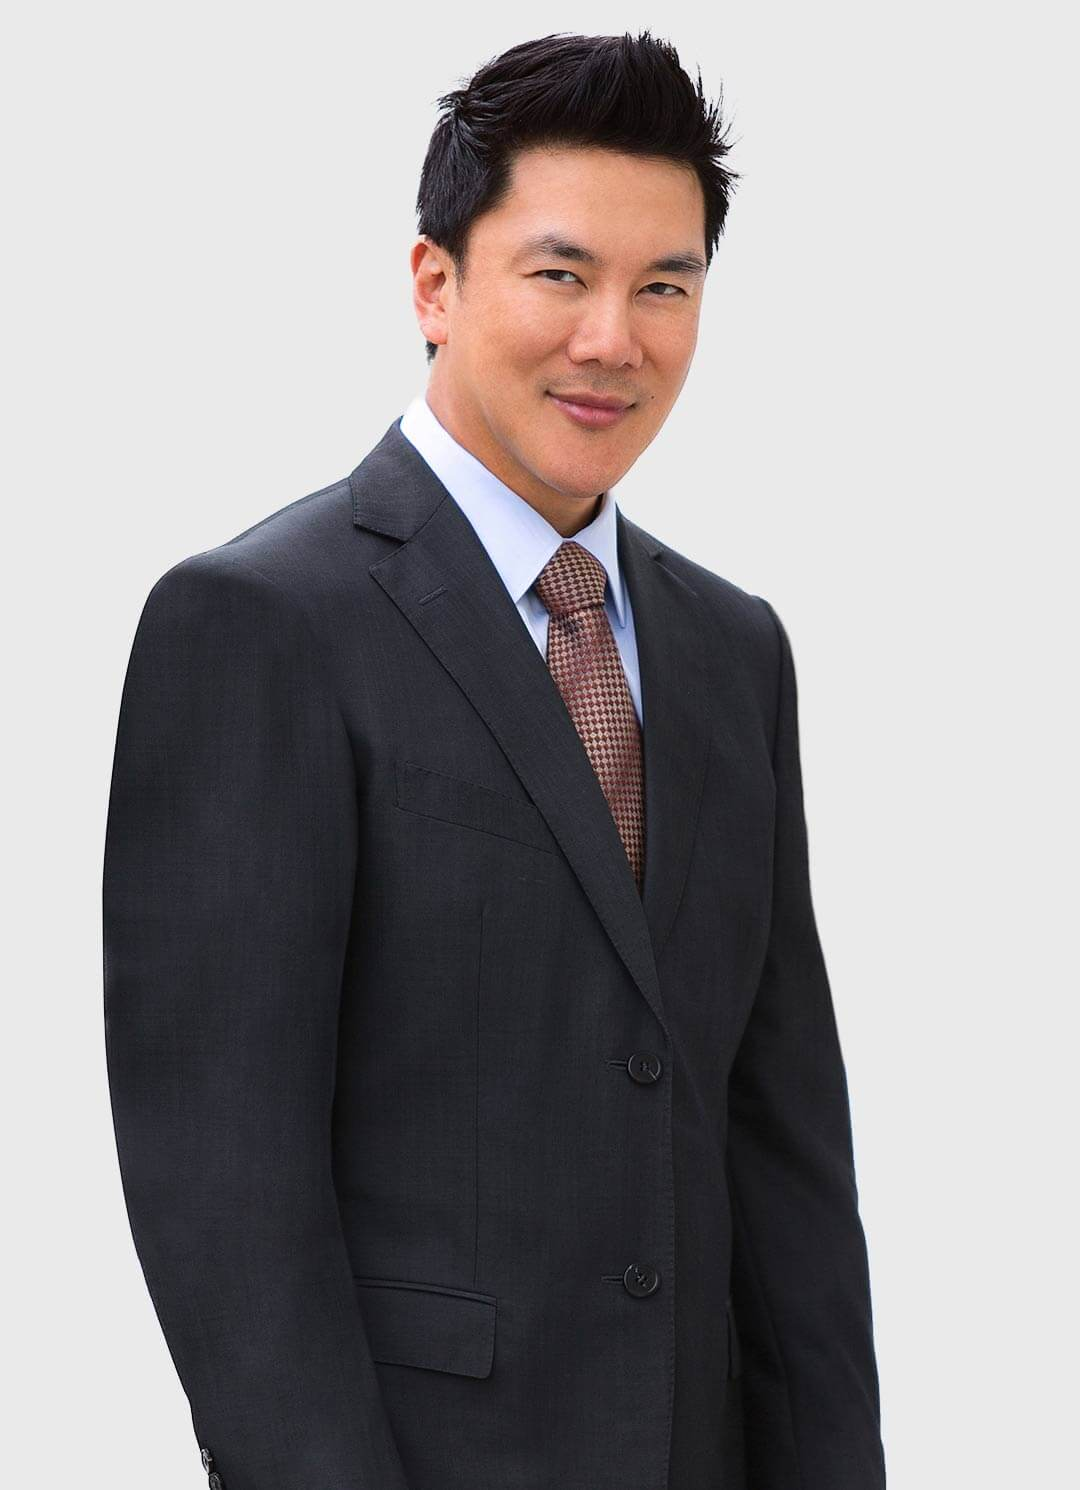 Kao Institute Founder - Dr. Chia Chi Kao